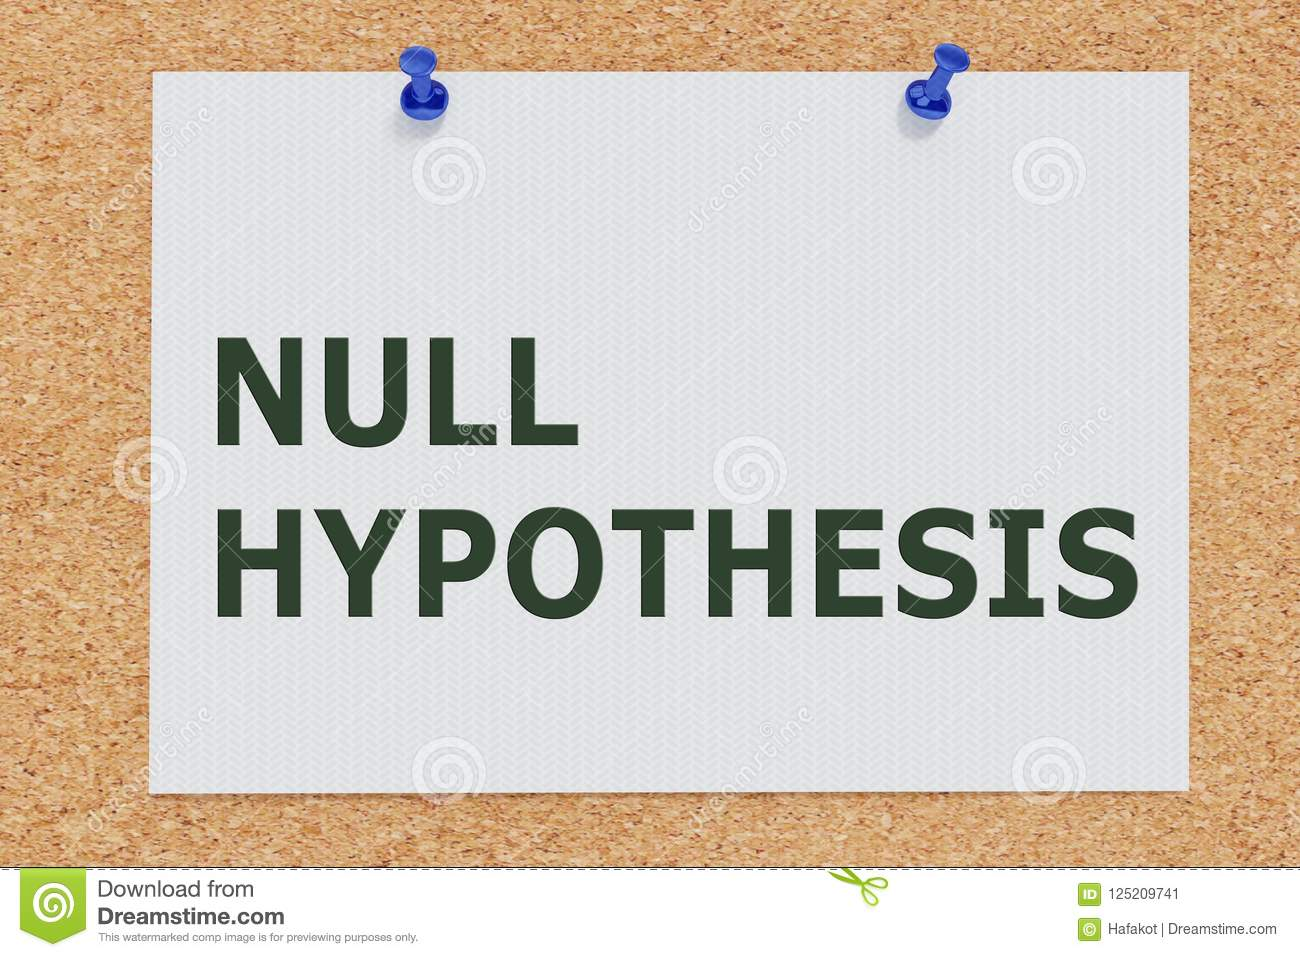 NULL HYPOTHESIS concept